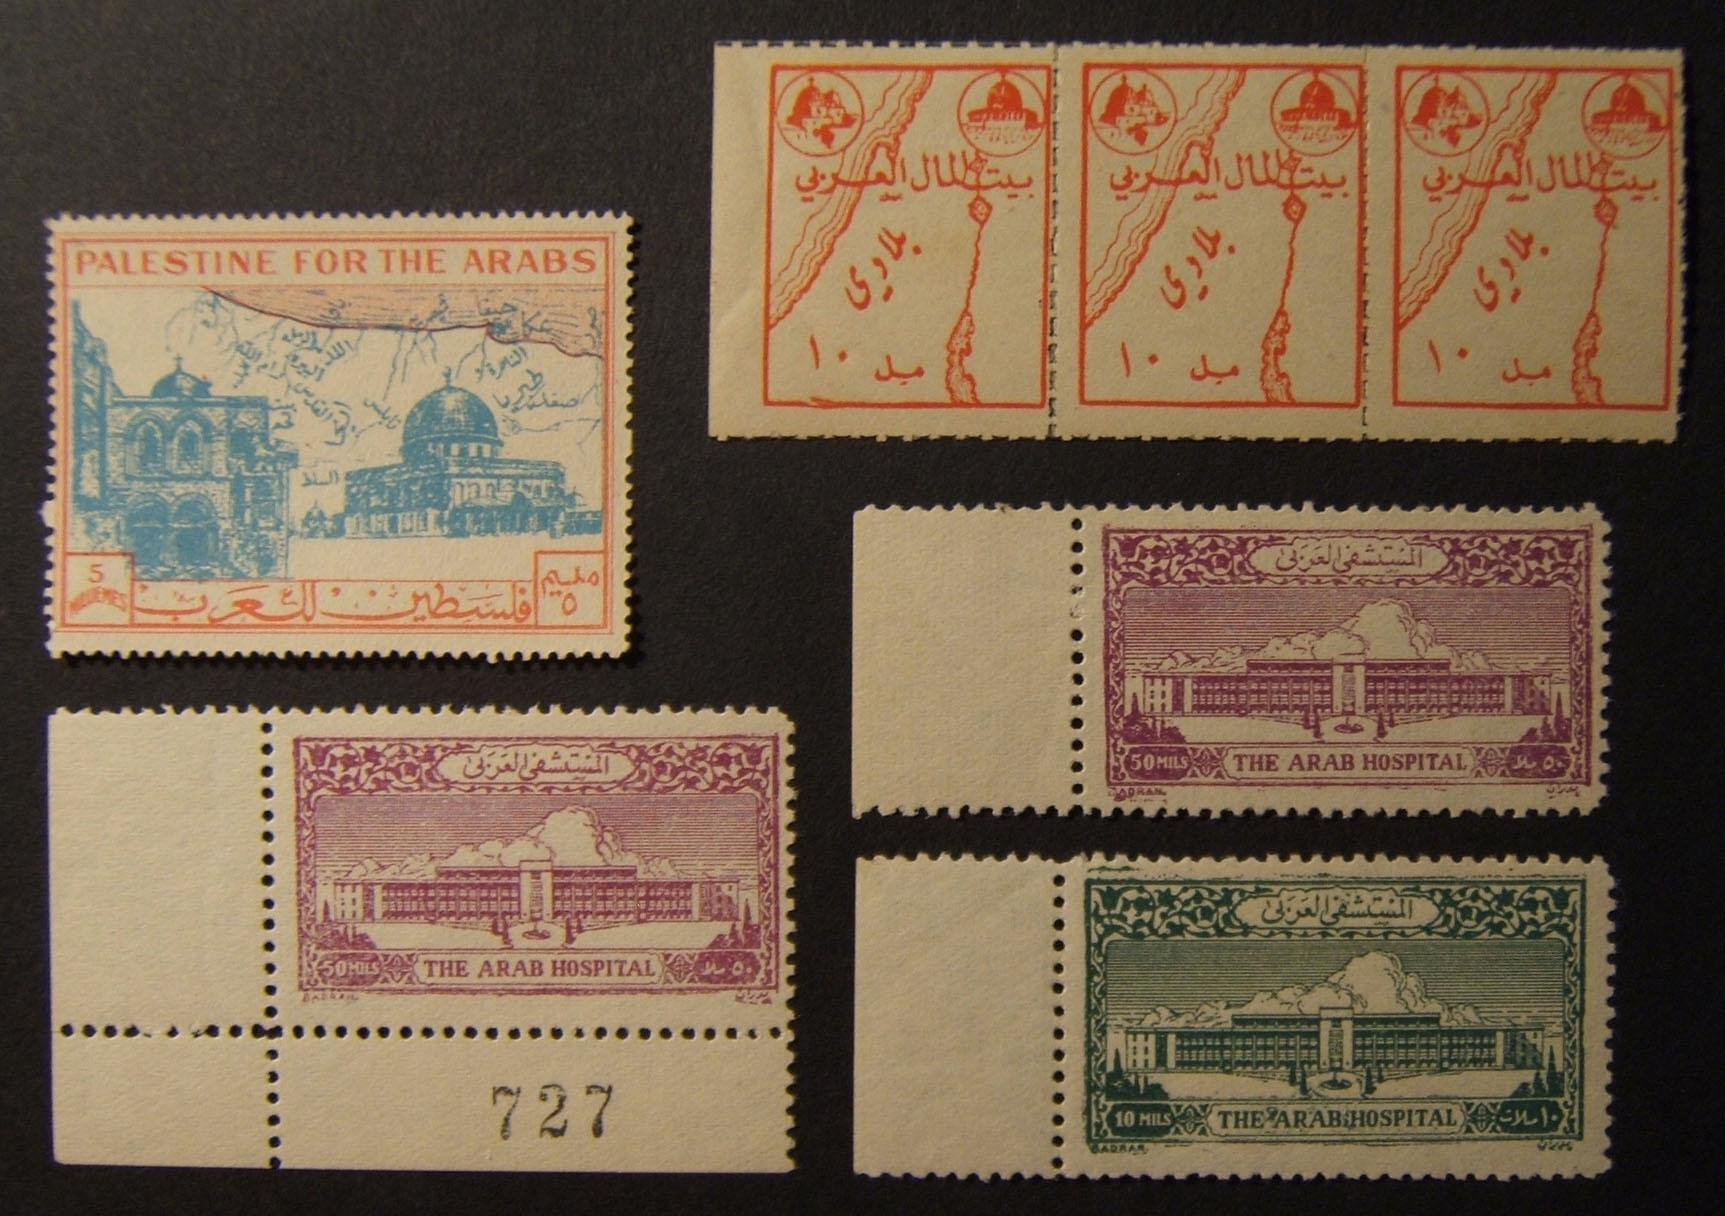 Palestine - lot x7 mint never hinged 1938/48-era Arab-related stamps: x3 denominated stamps of